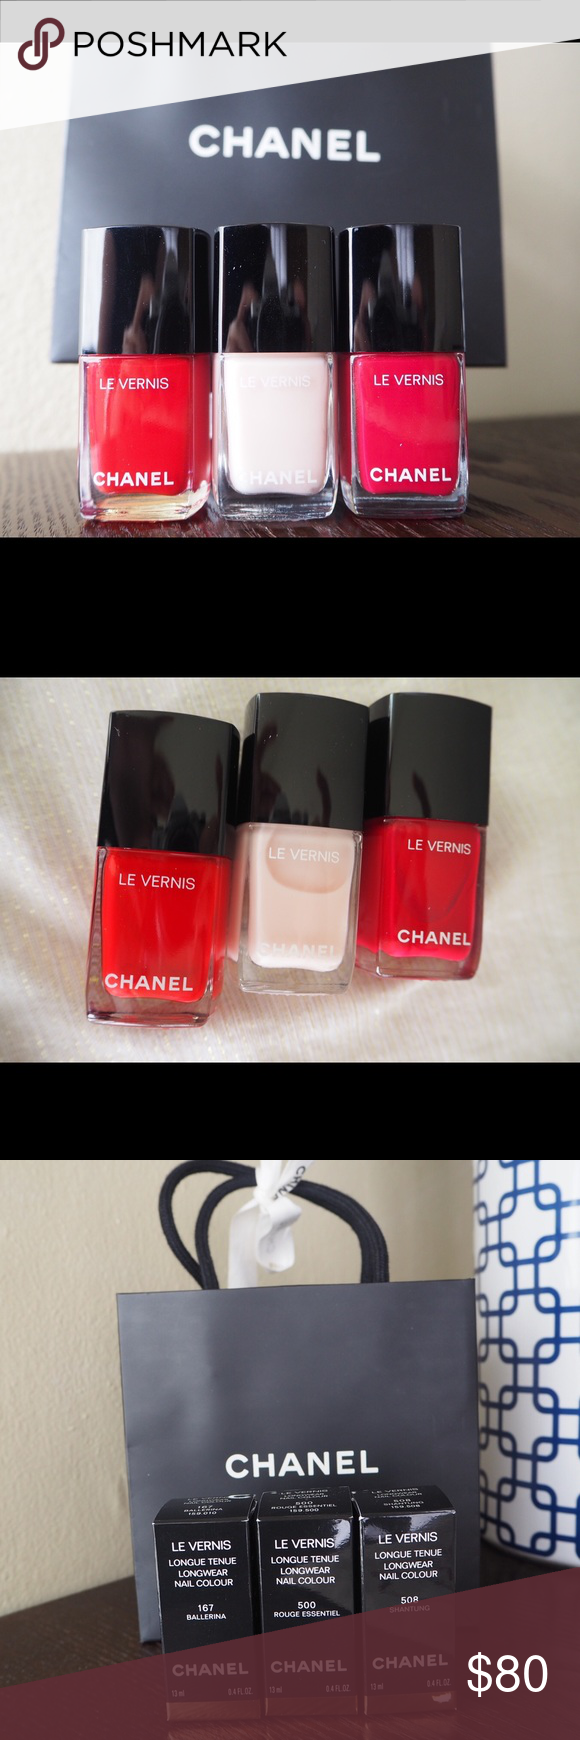 CHANEL nail polish trio. New with box and giftbag Boutique ...